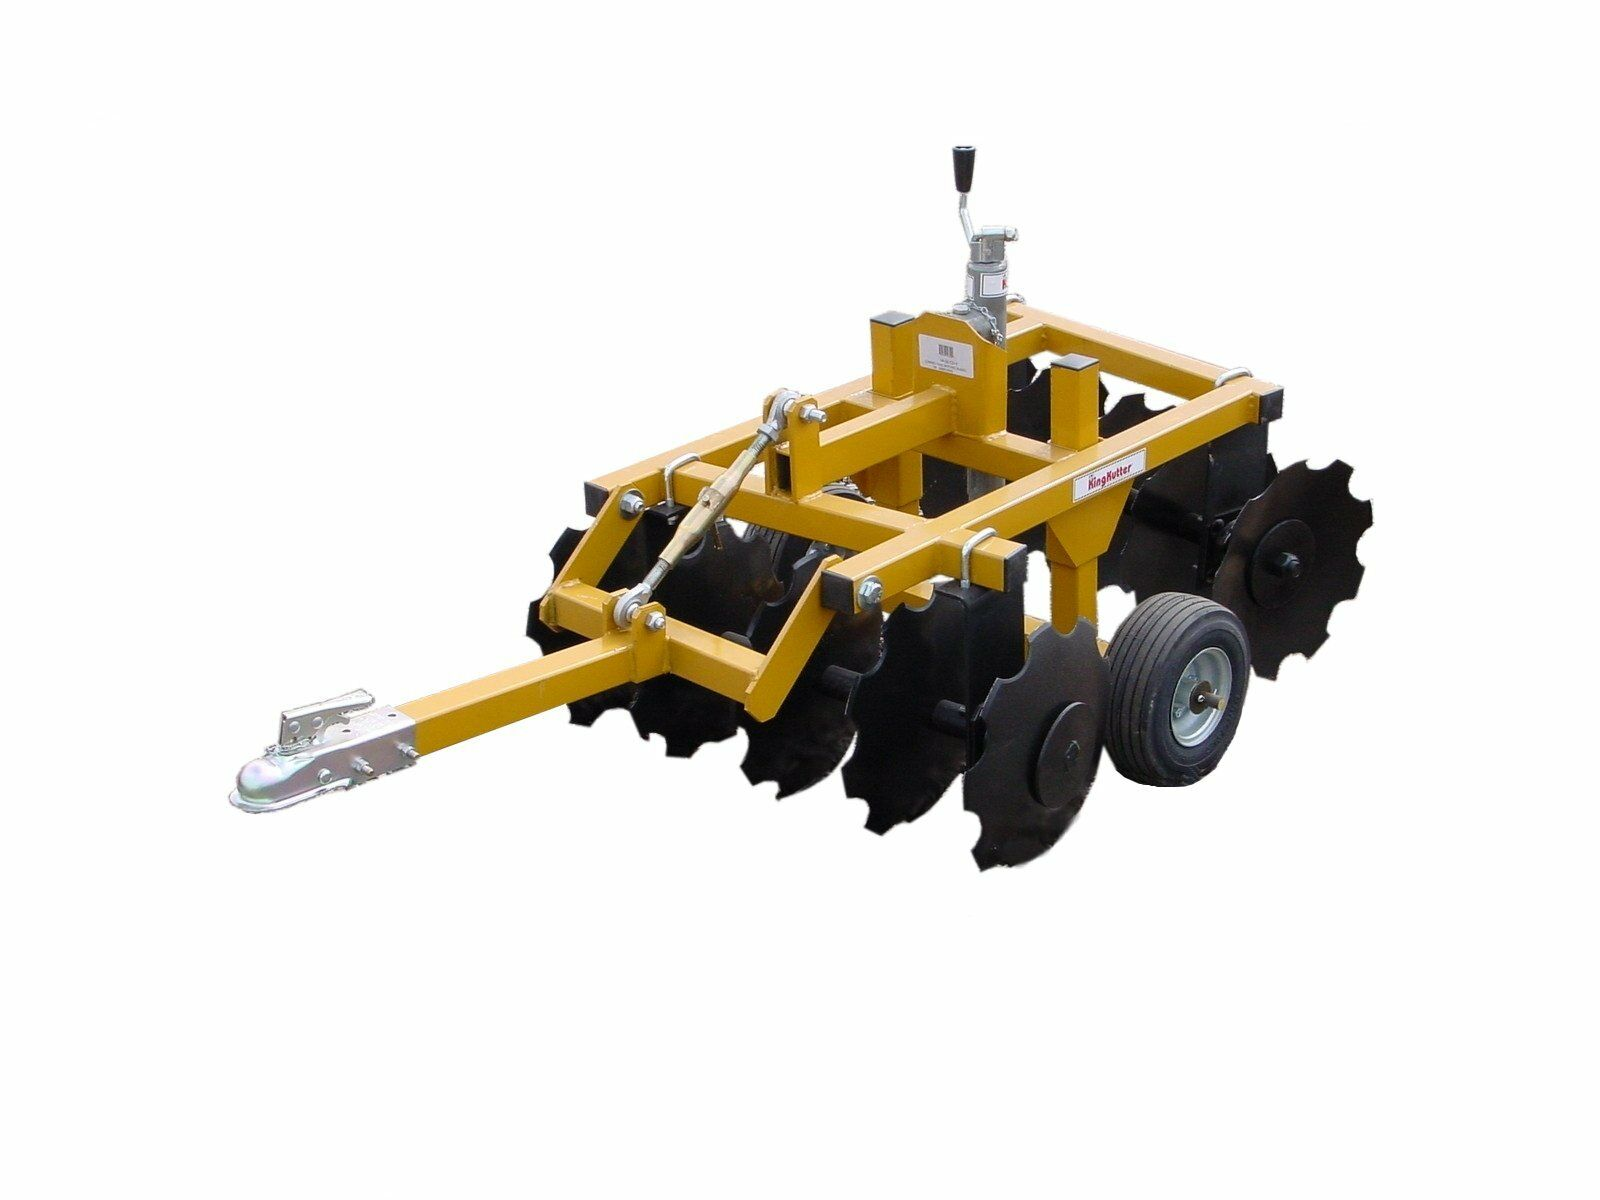 Notched Disc Harrow Blade 1 : King kutter compact disc atv notched blades cd y